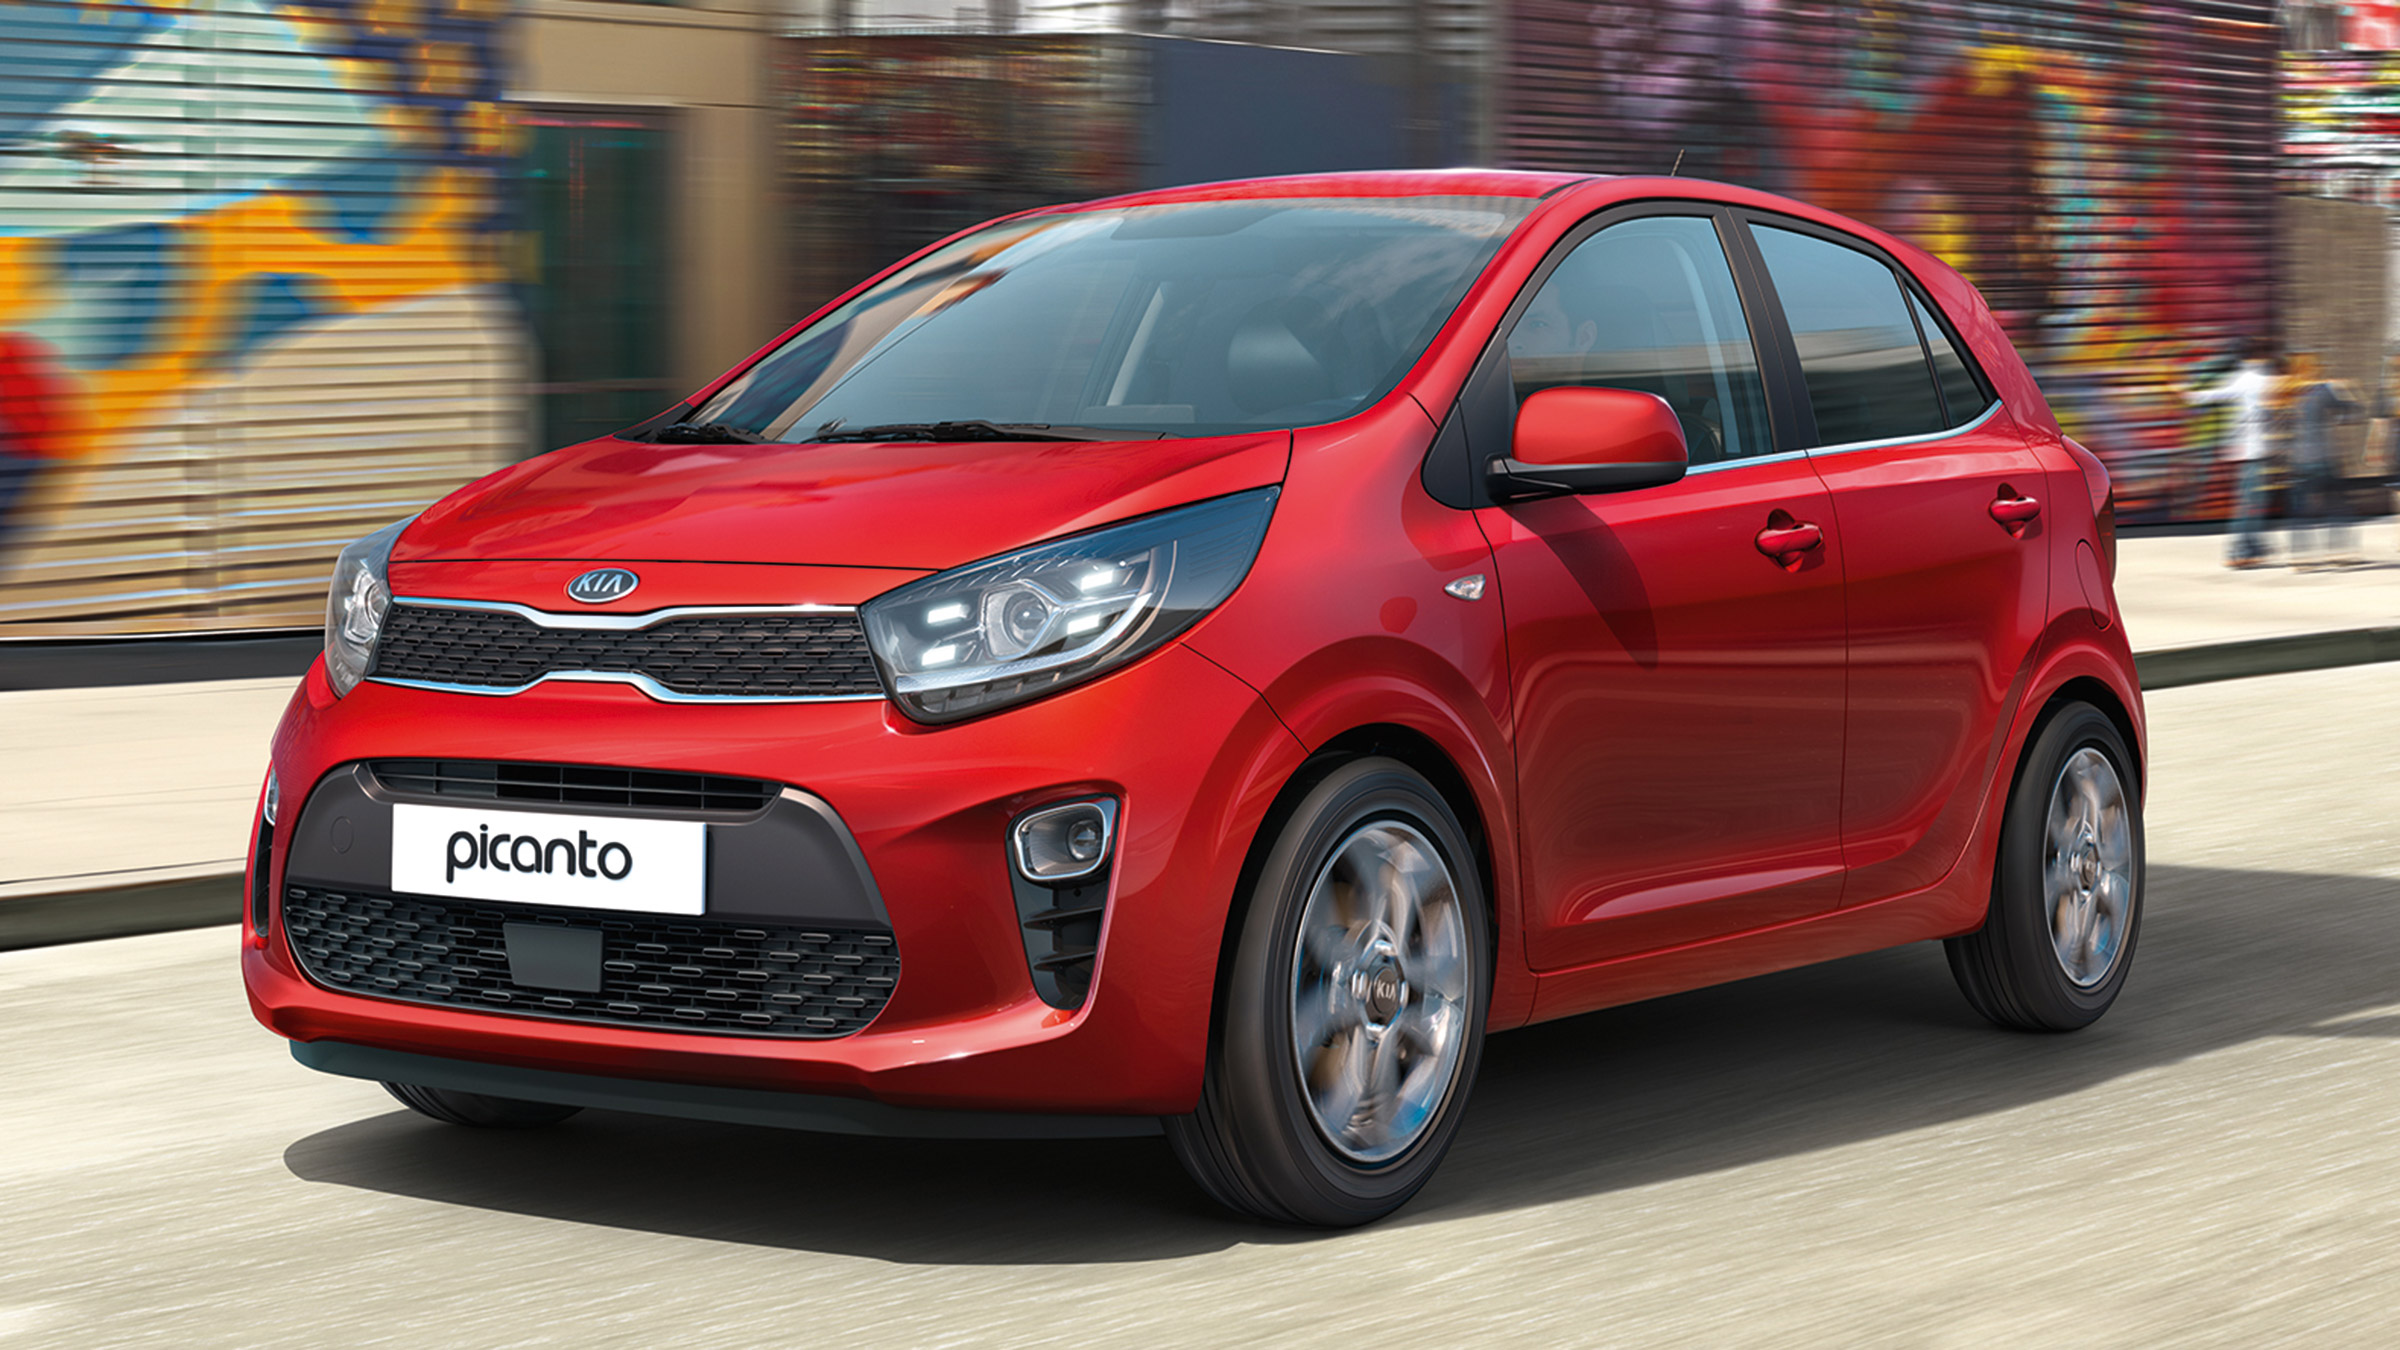 New 2020 Kia Picanto: UK prices and specifications revealed | Auto Express